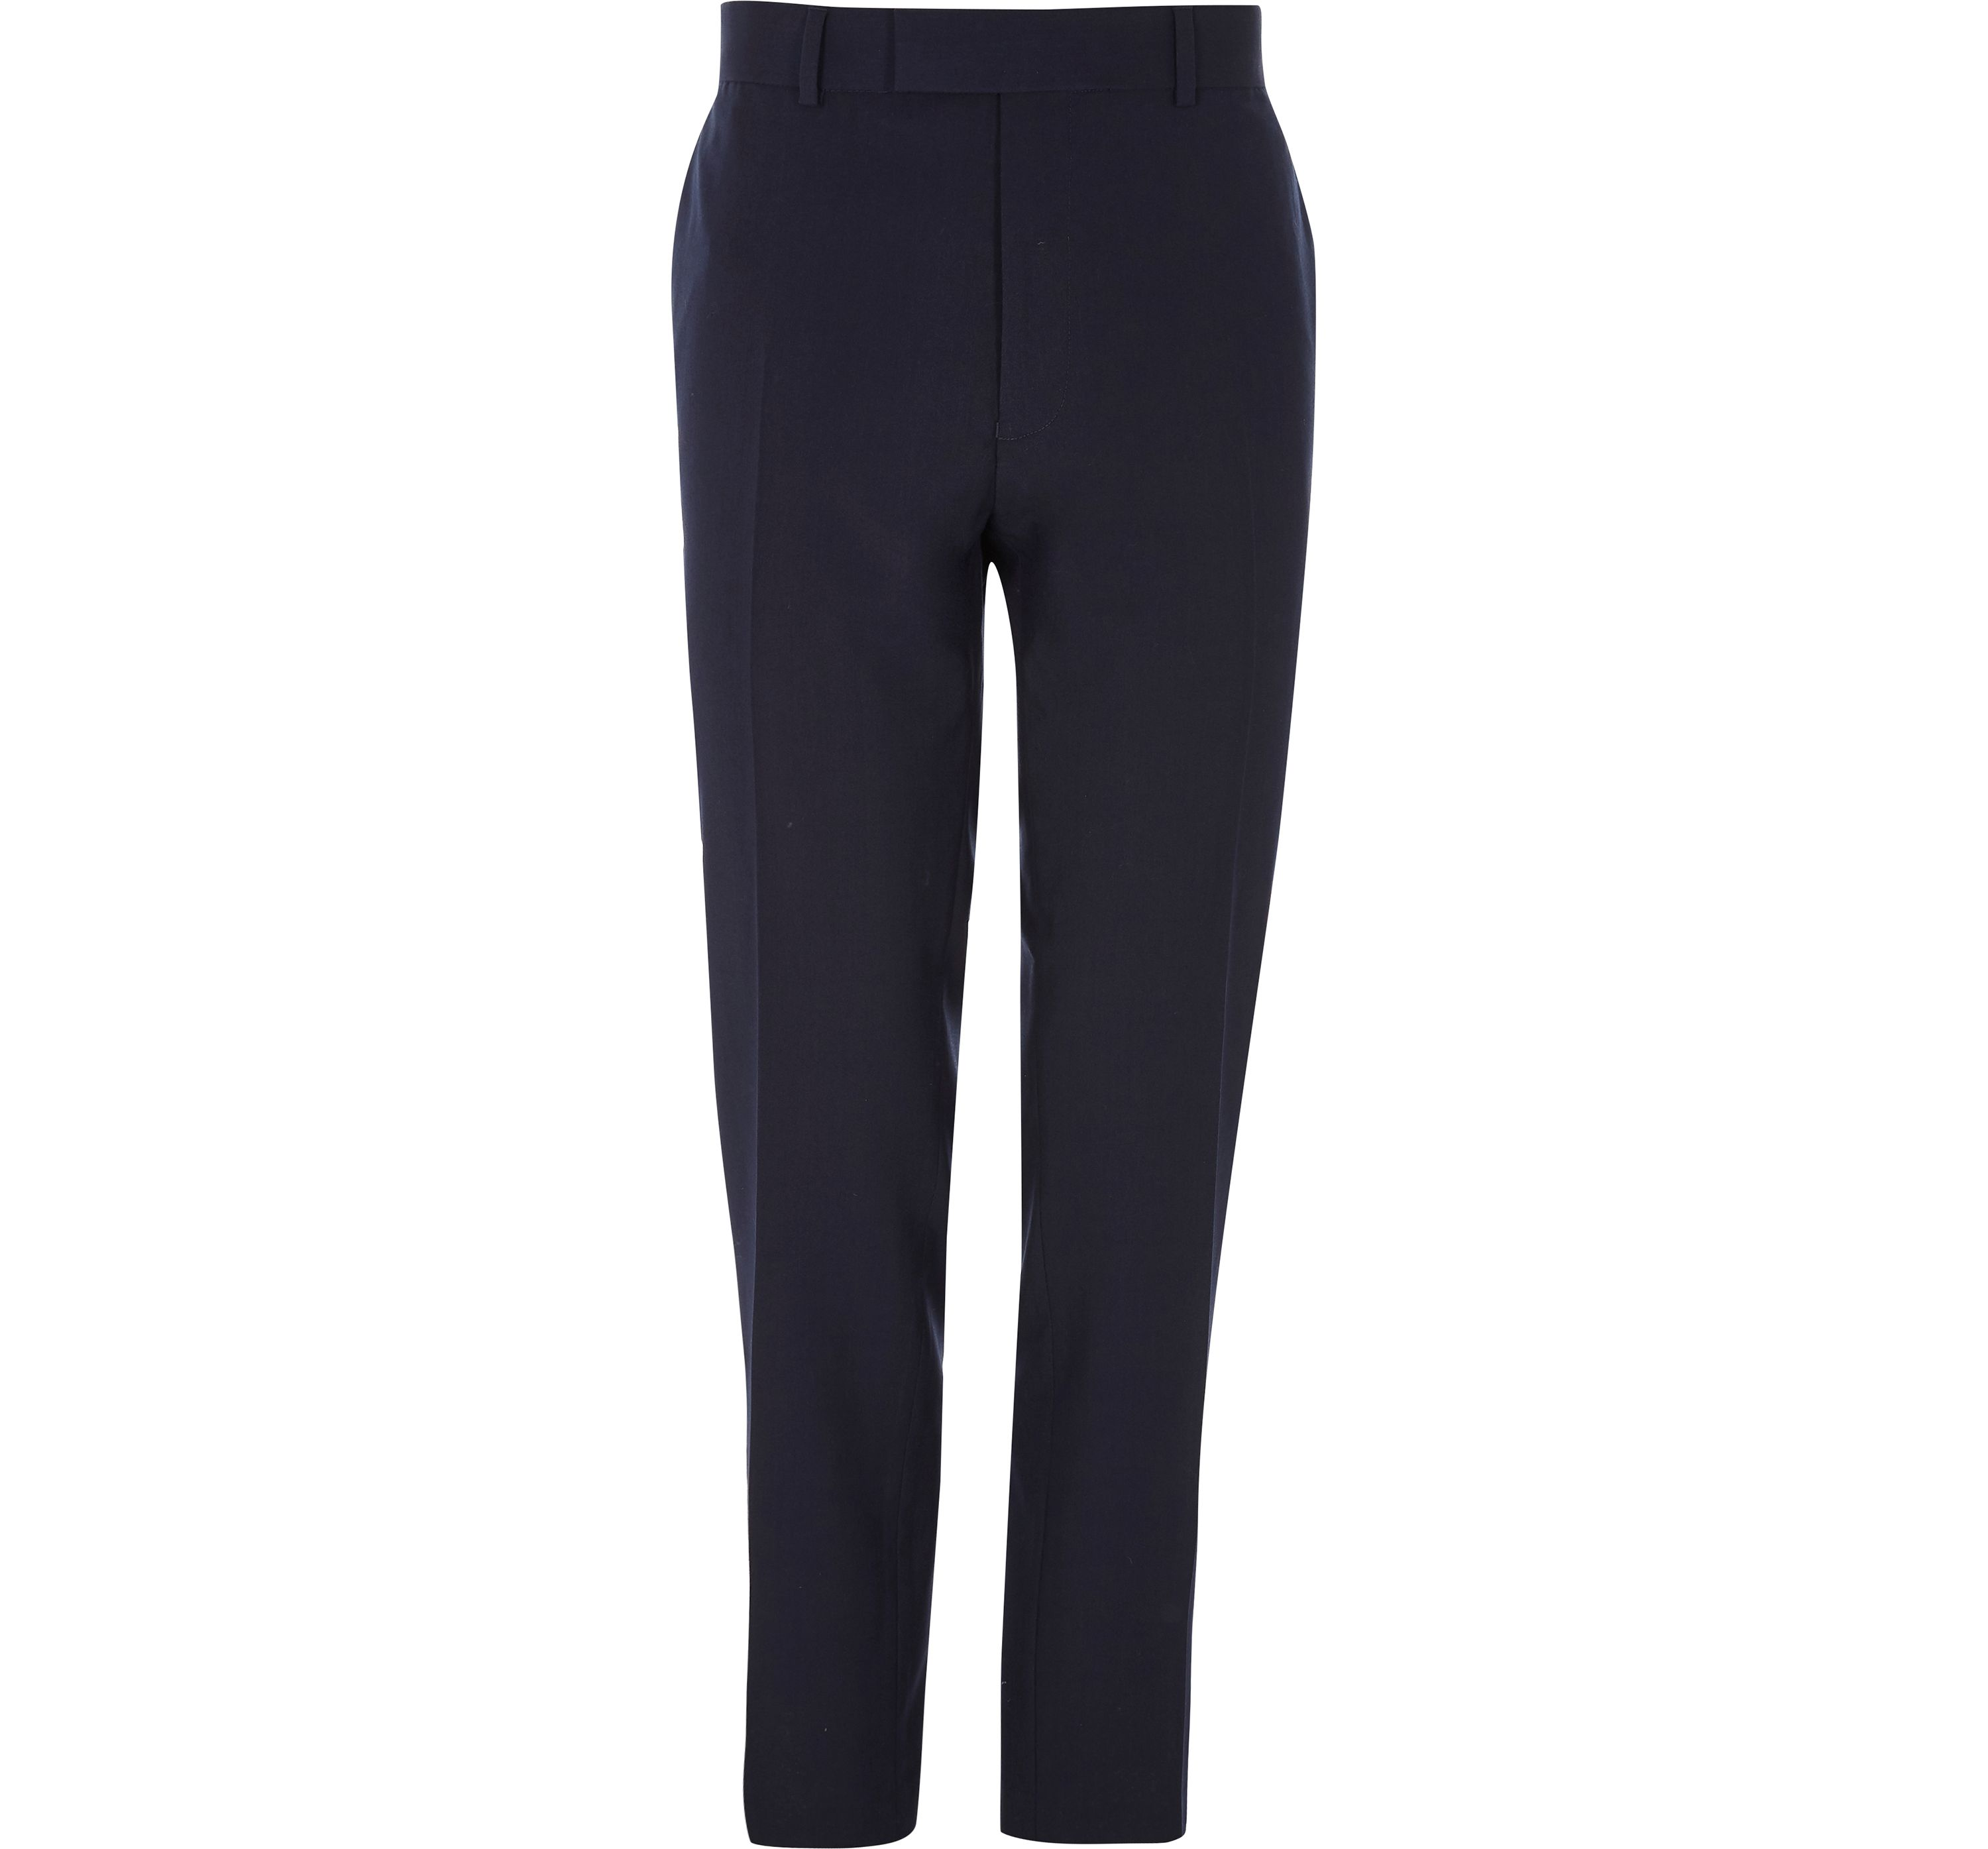 River Island Mens Navy tailored skinny fit trousers